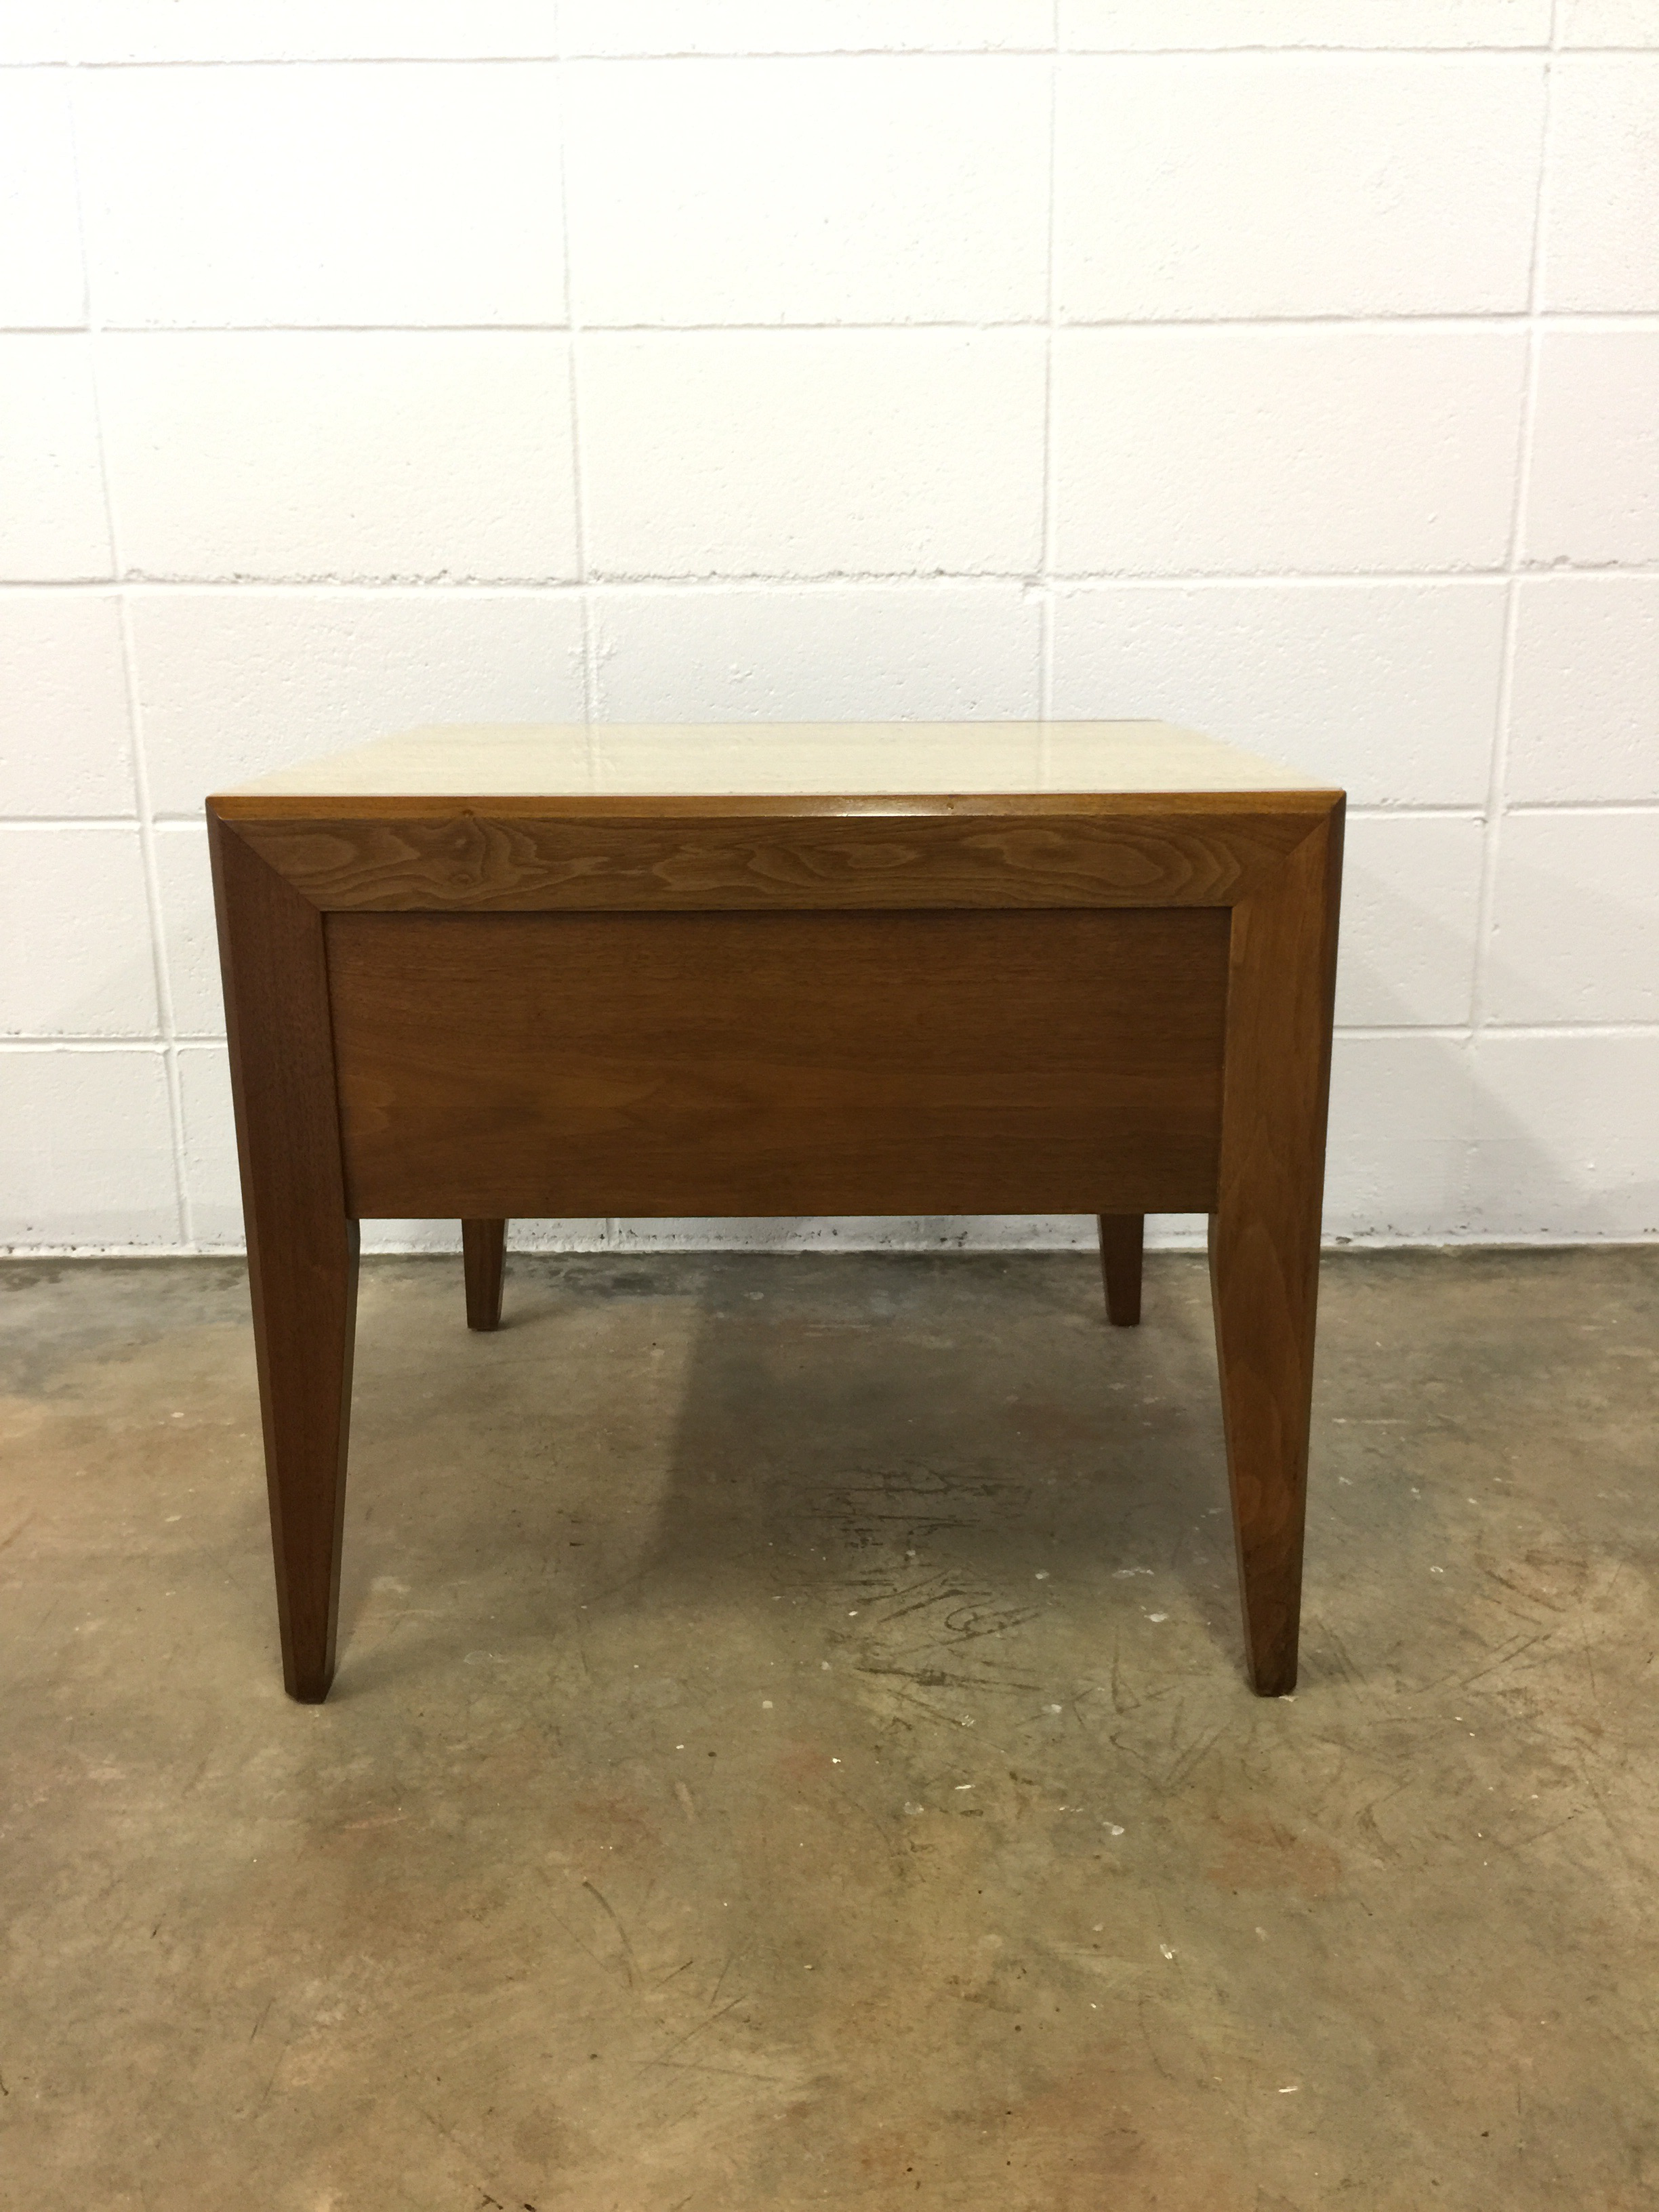 Superb Mid Century Modern Travertine Top End Table   Image 7 Of 9